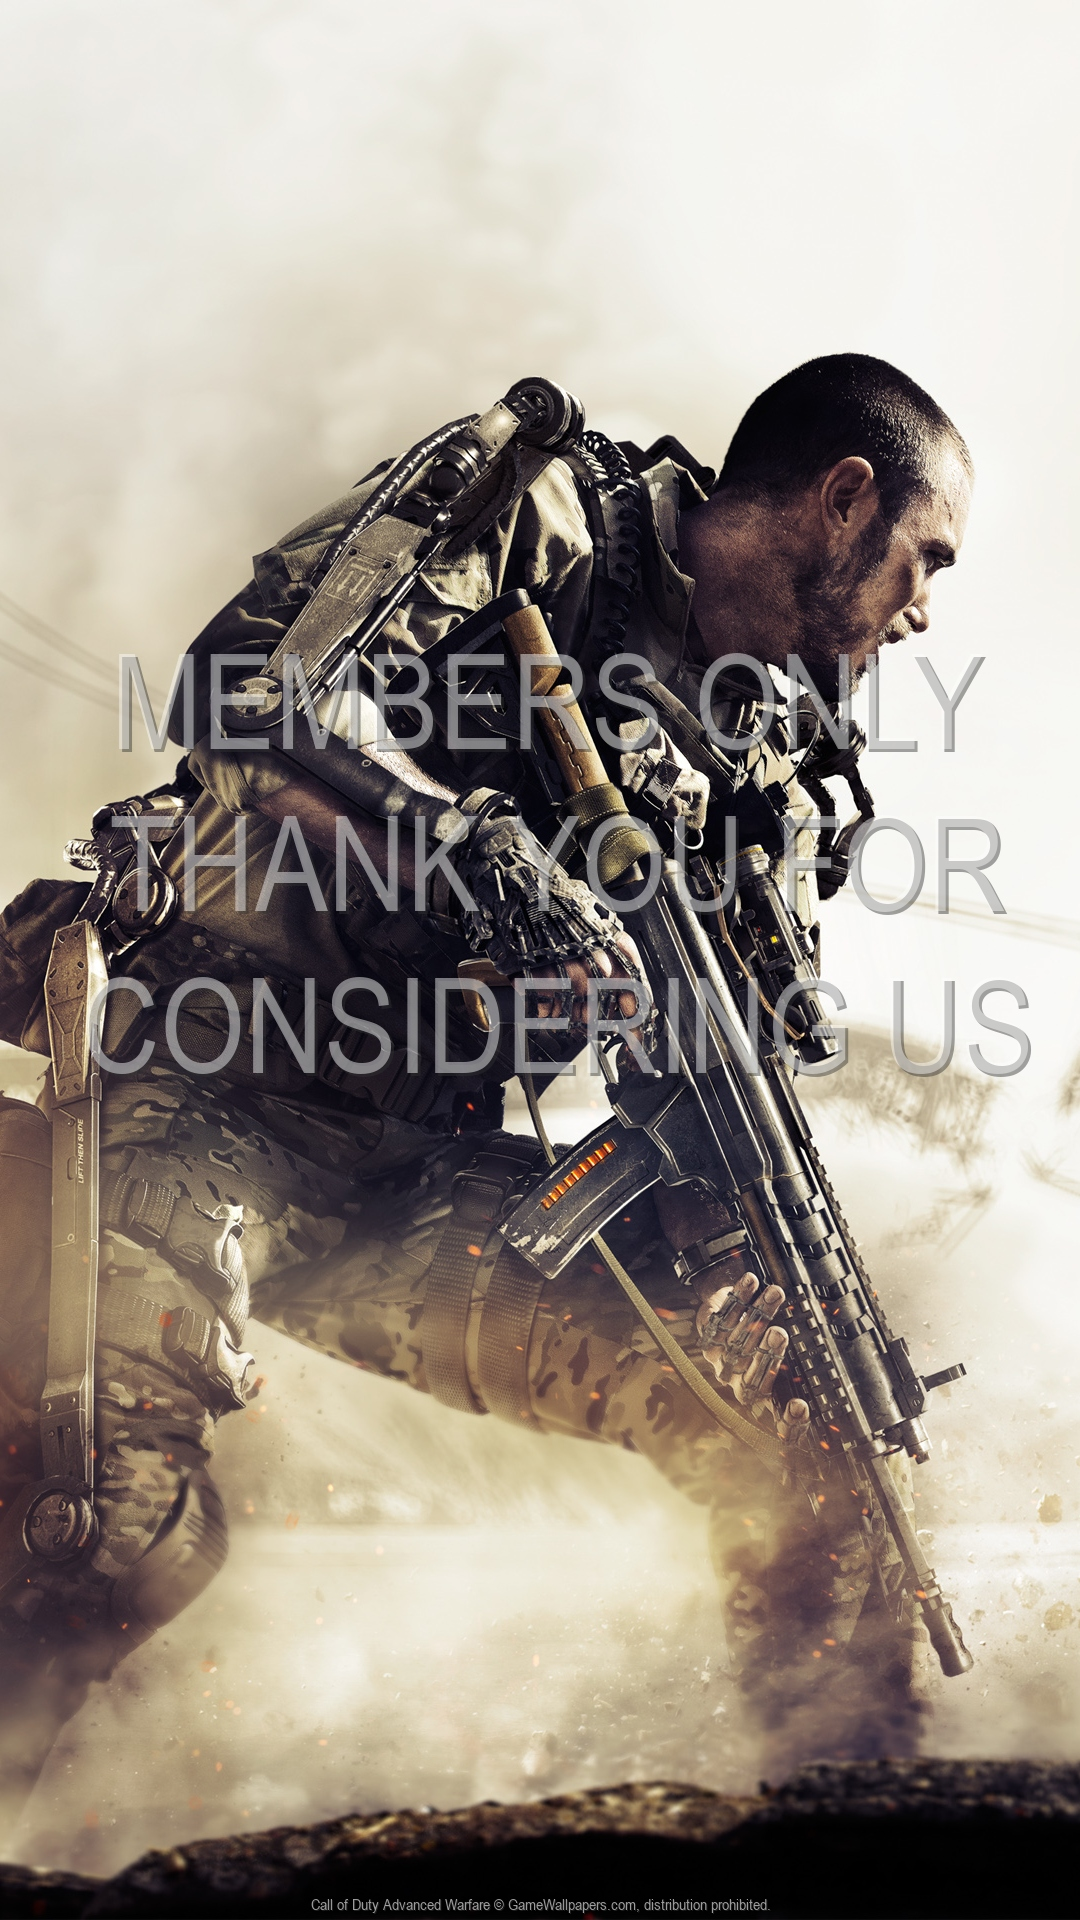 Call of Duty: Advanced Warfare 1920x1080 Mobile wallpaper or background 02